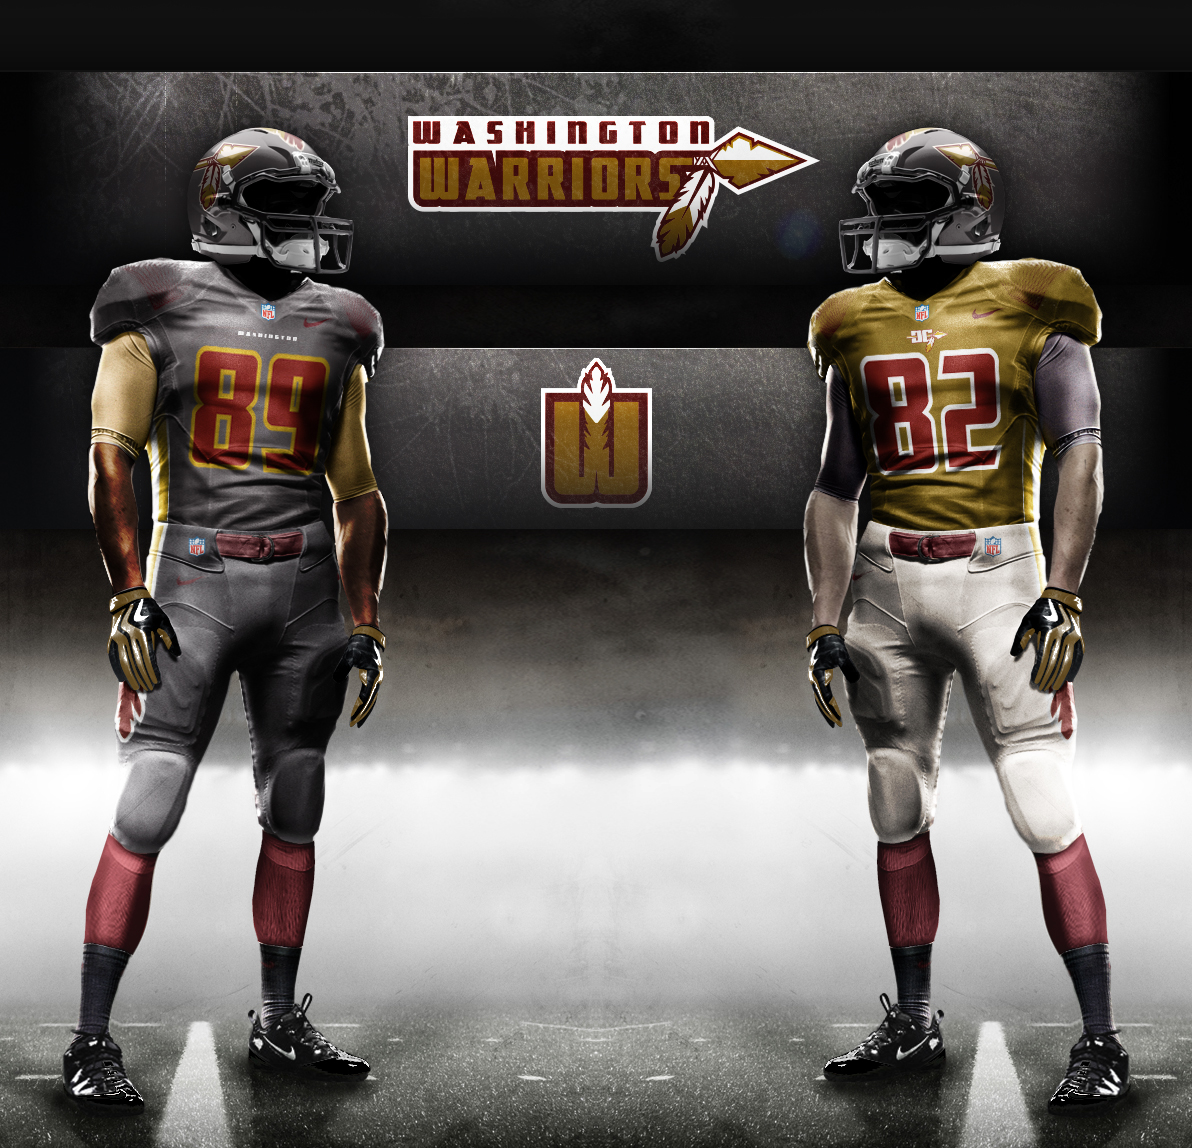 promo code a2f35 a9615 Washington Warriors (Redskins Redesign) on Behance